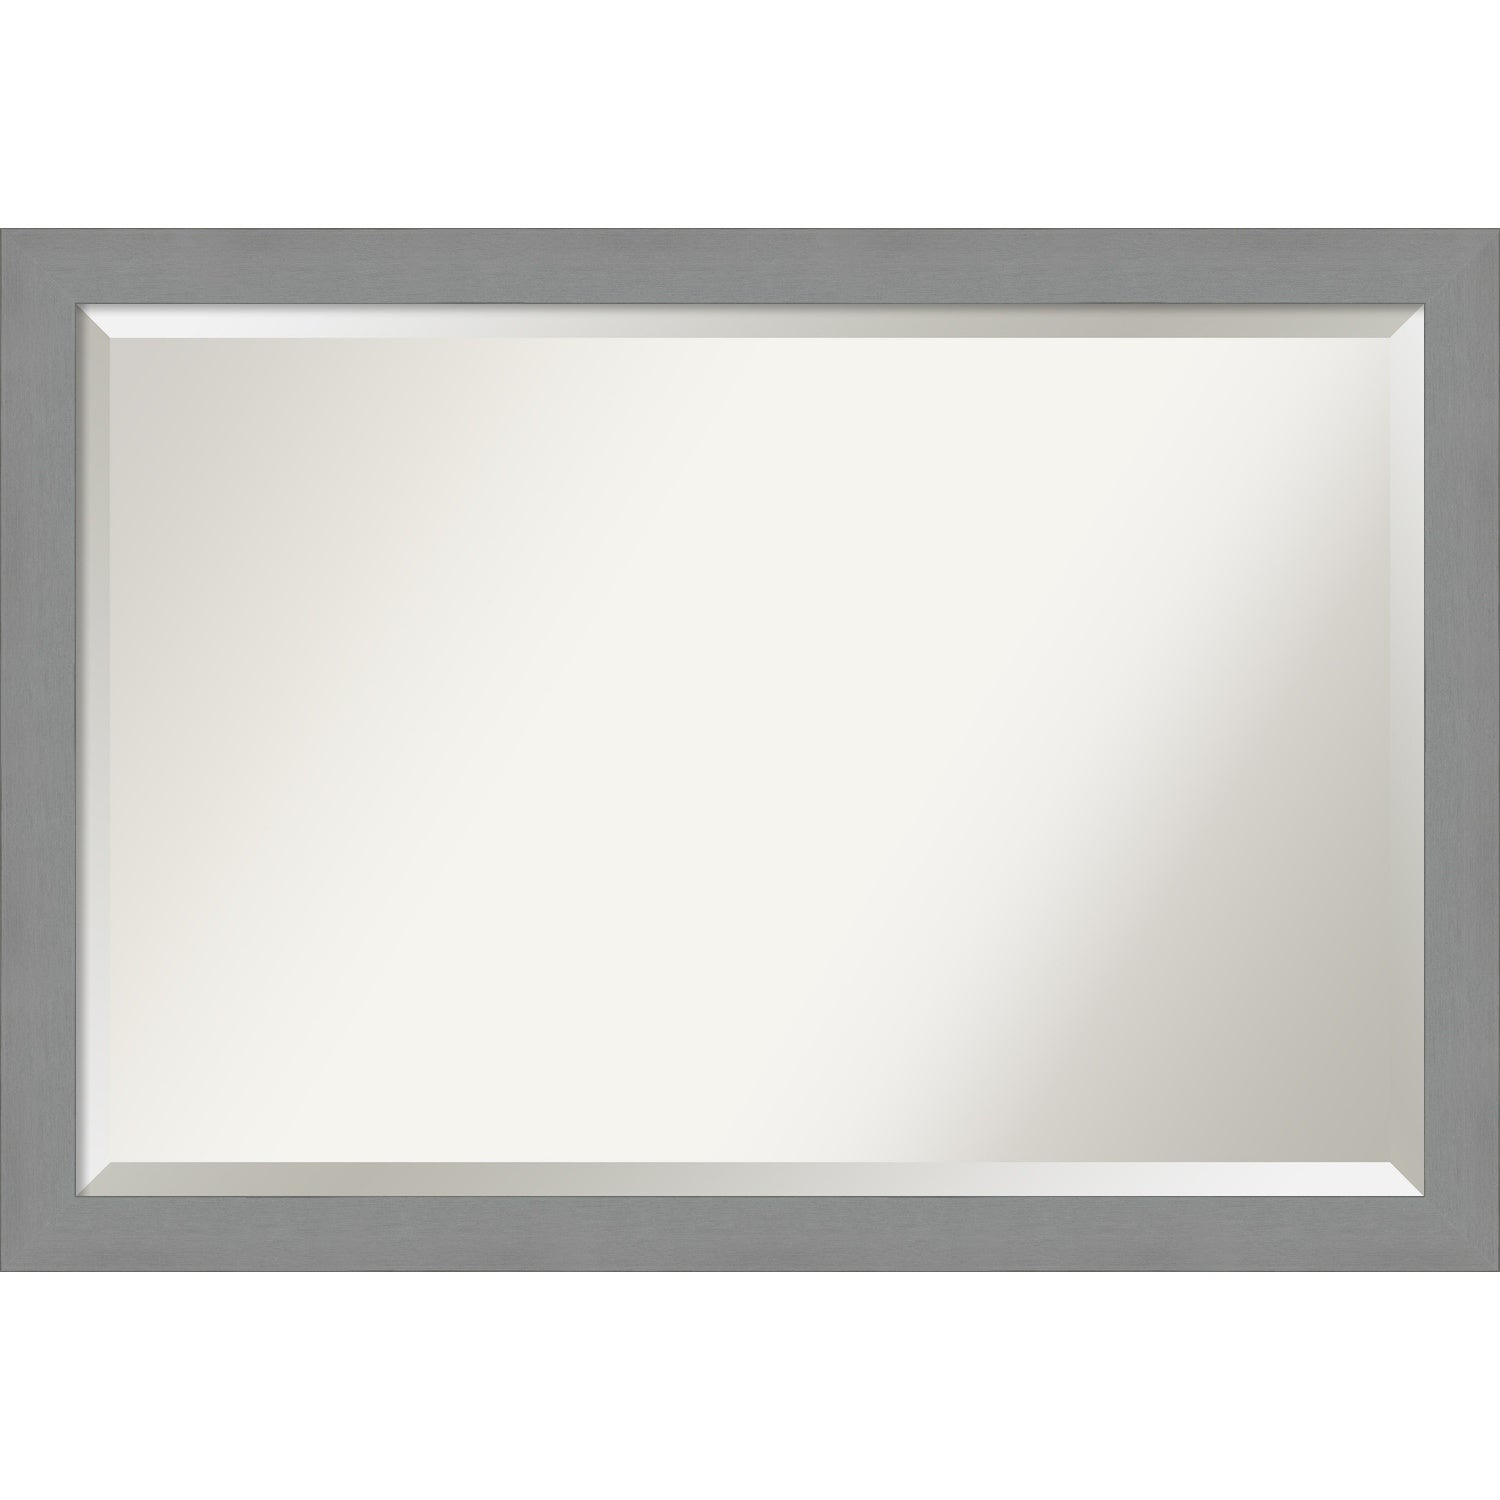 Accent Mirrors | Shop Online At Overstock Inside Derick Accent Mirrors (Image 1 of 20)